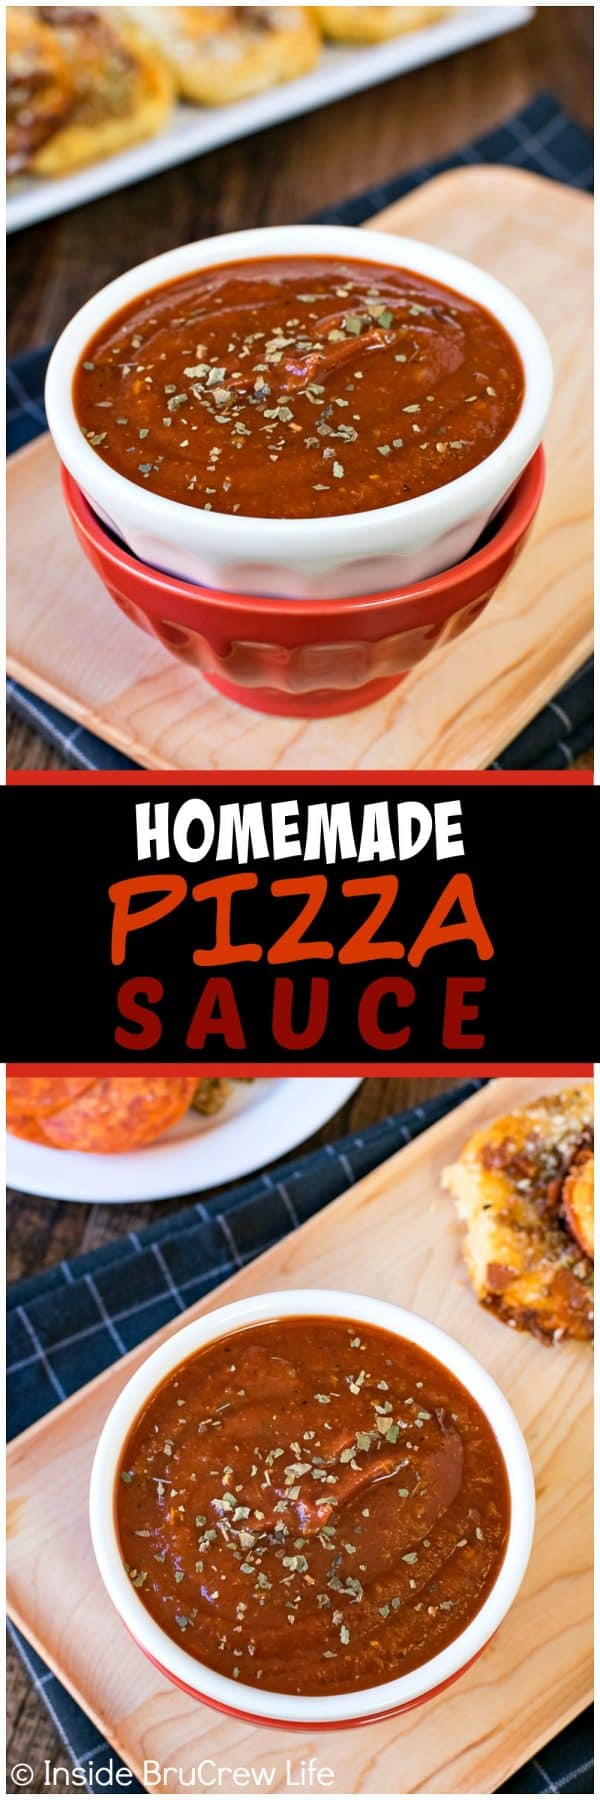 Homemade Pizza Sauce - this easy tomato sauce comes together in minutes and is full of flavor. Great recipe to use on homemade pizzas or for dipping pizza appetizers in.